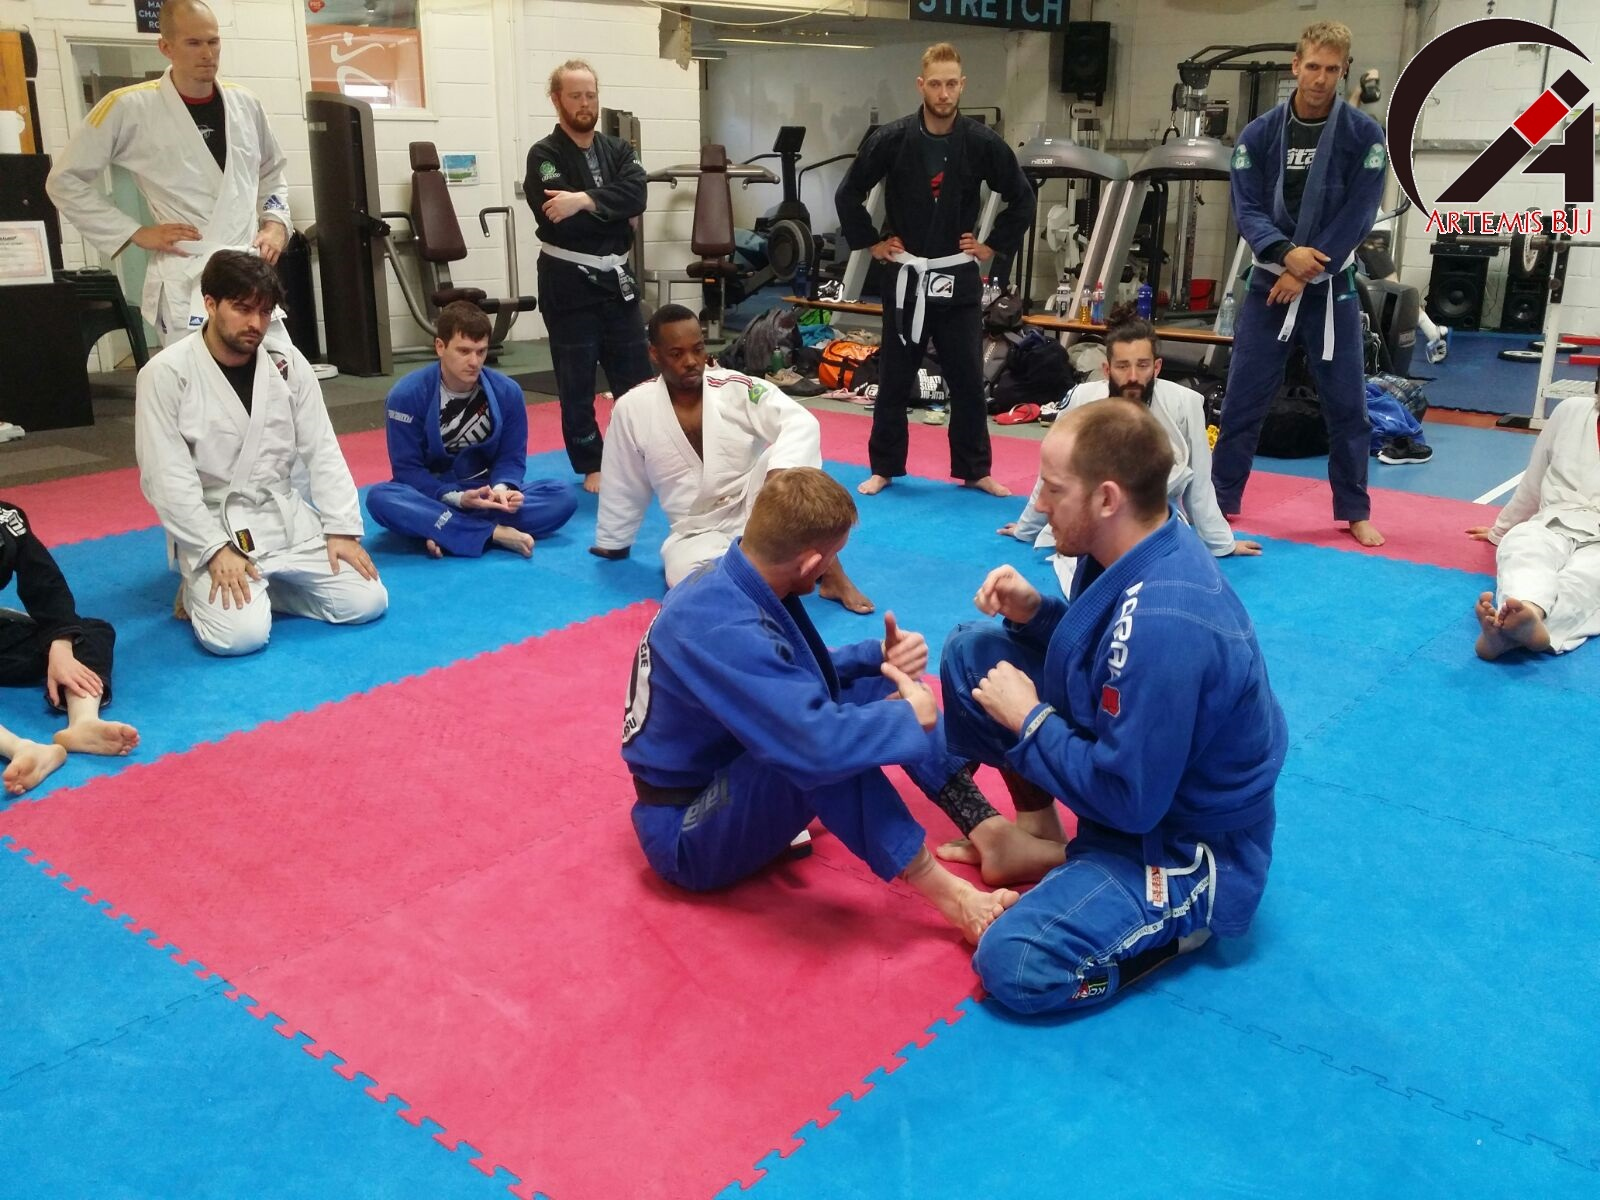 Grading Seminar with Kev Capel at Artemis BJJ Bristol Brazilian Jiu Jitsu